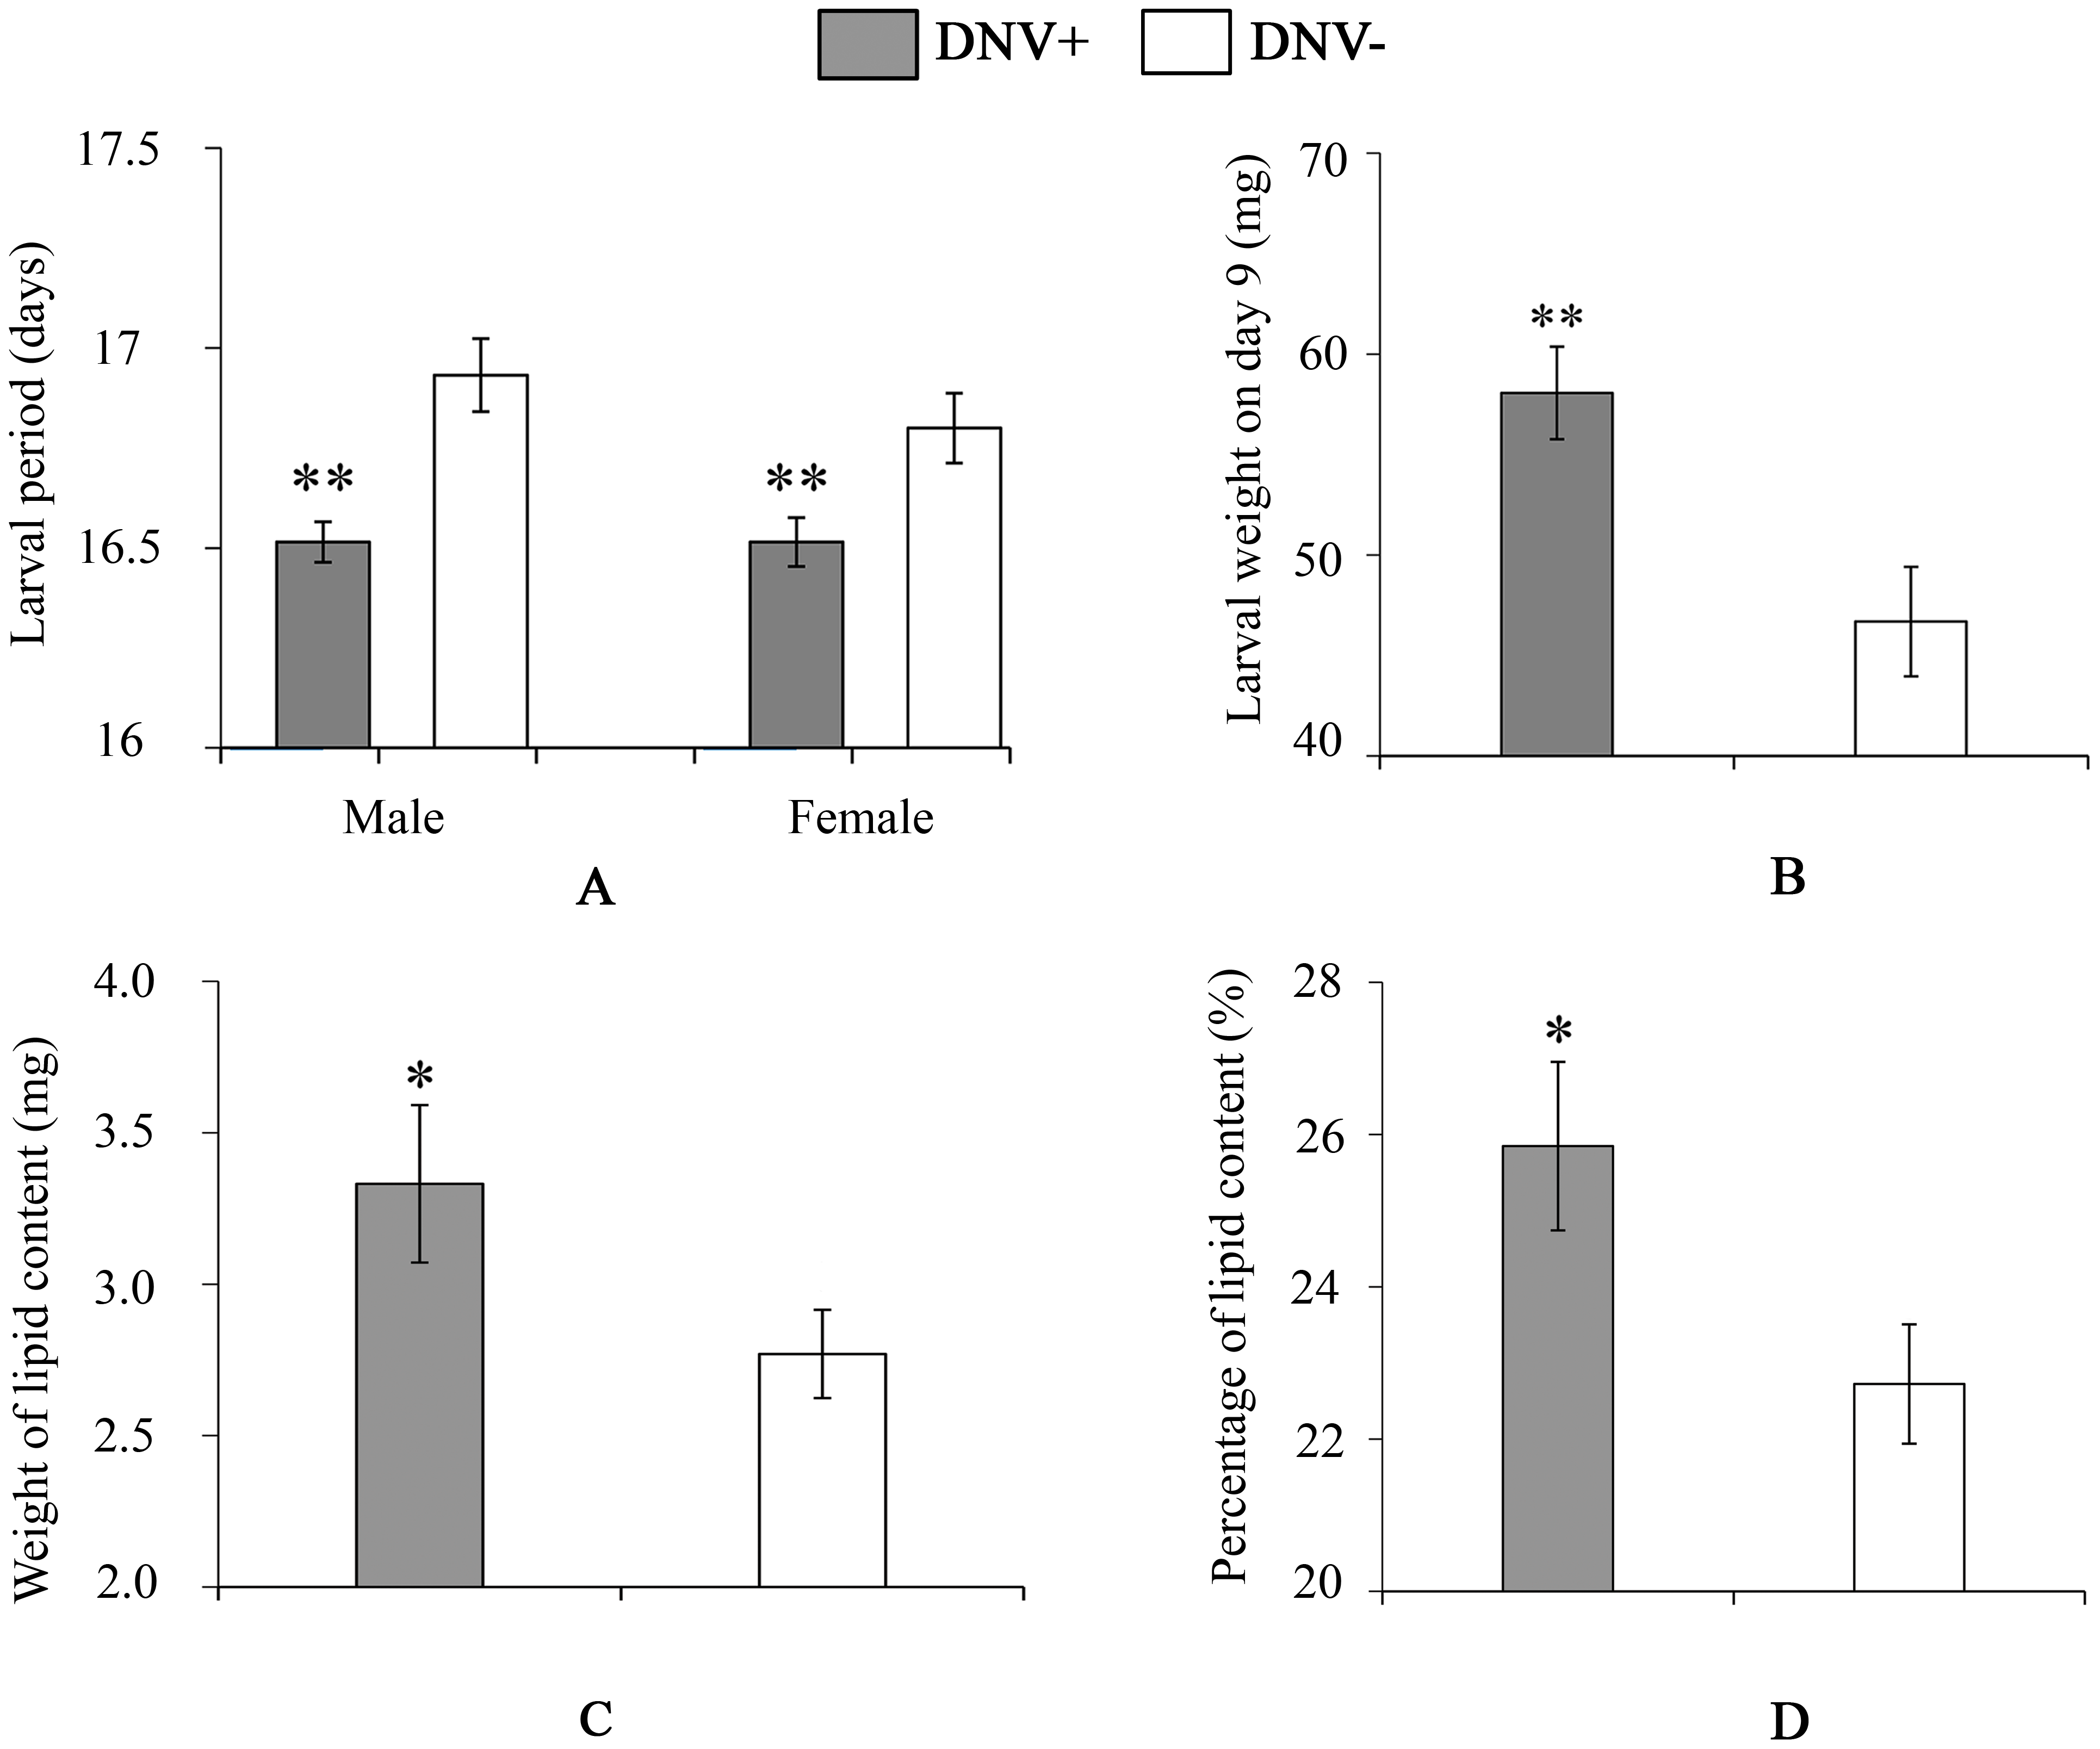 Larval life-history parameters of DNV- and DNV+ cotton bollworms.